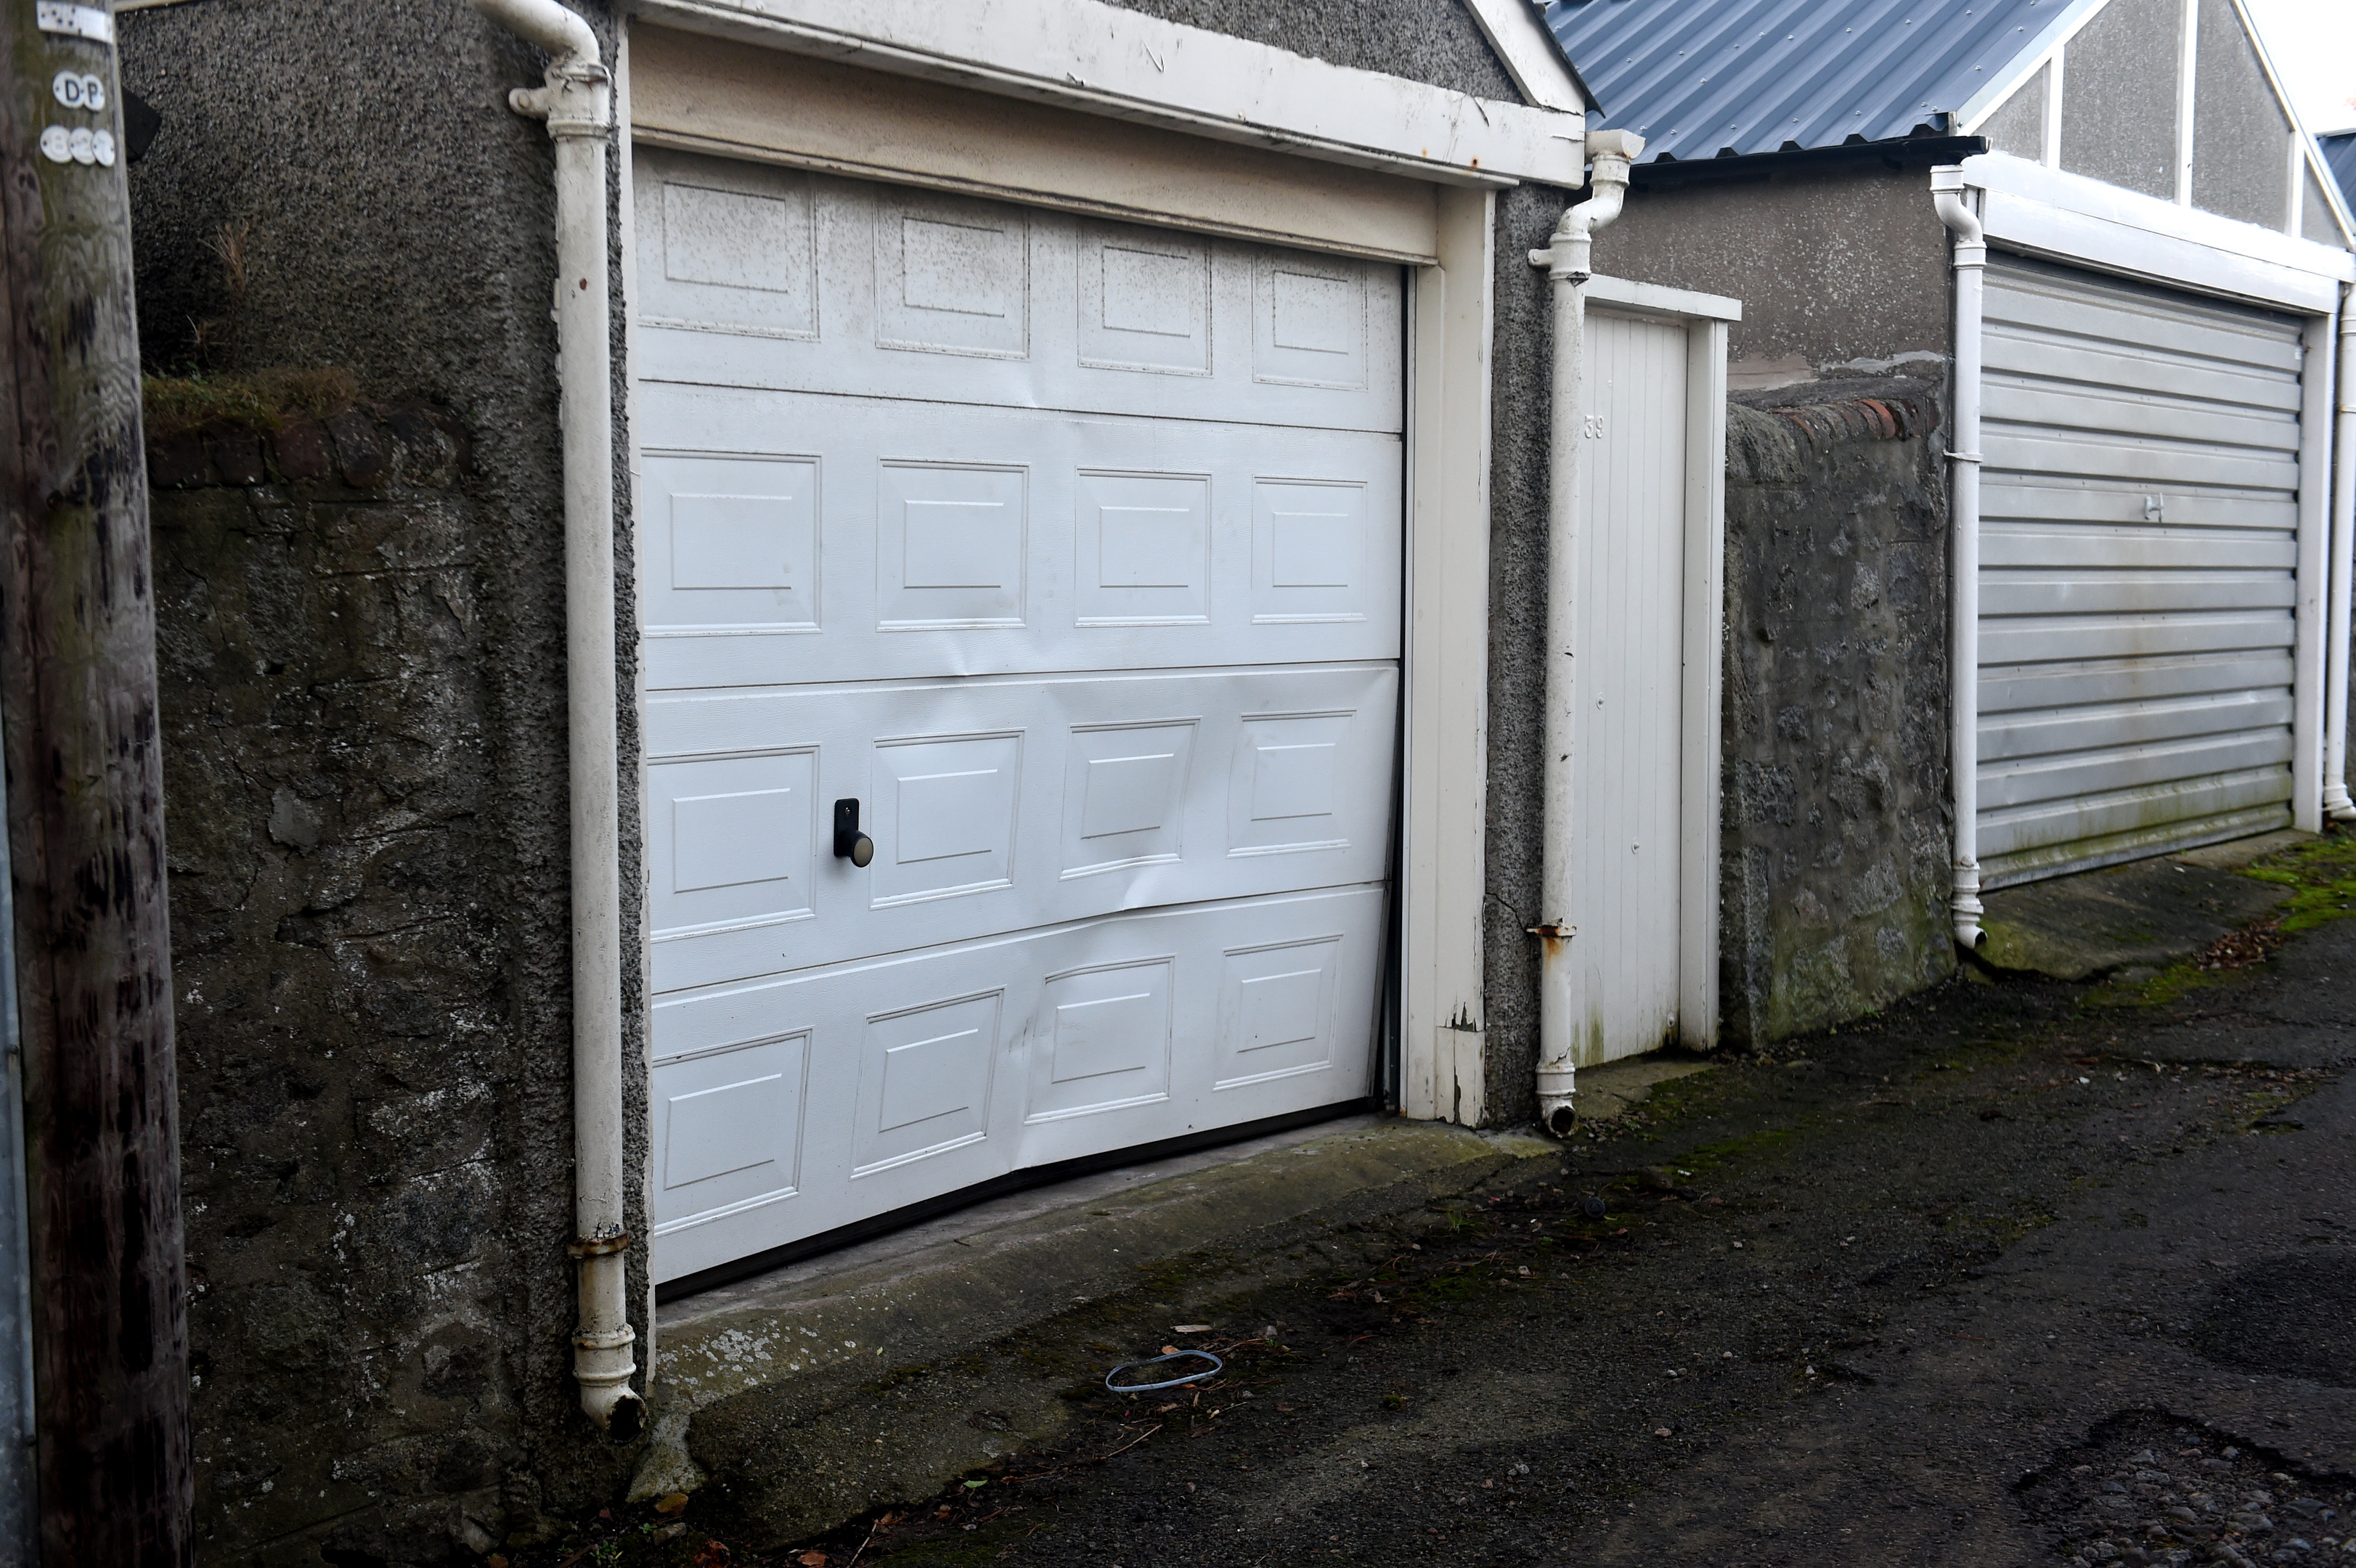 dented:  Damage to a garage near Salisbury Terrace and Gray Street.